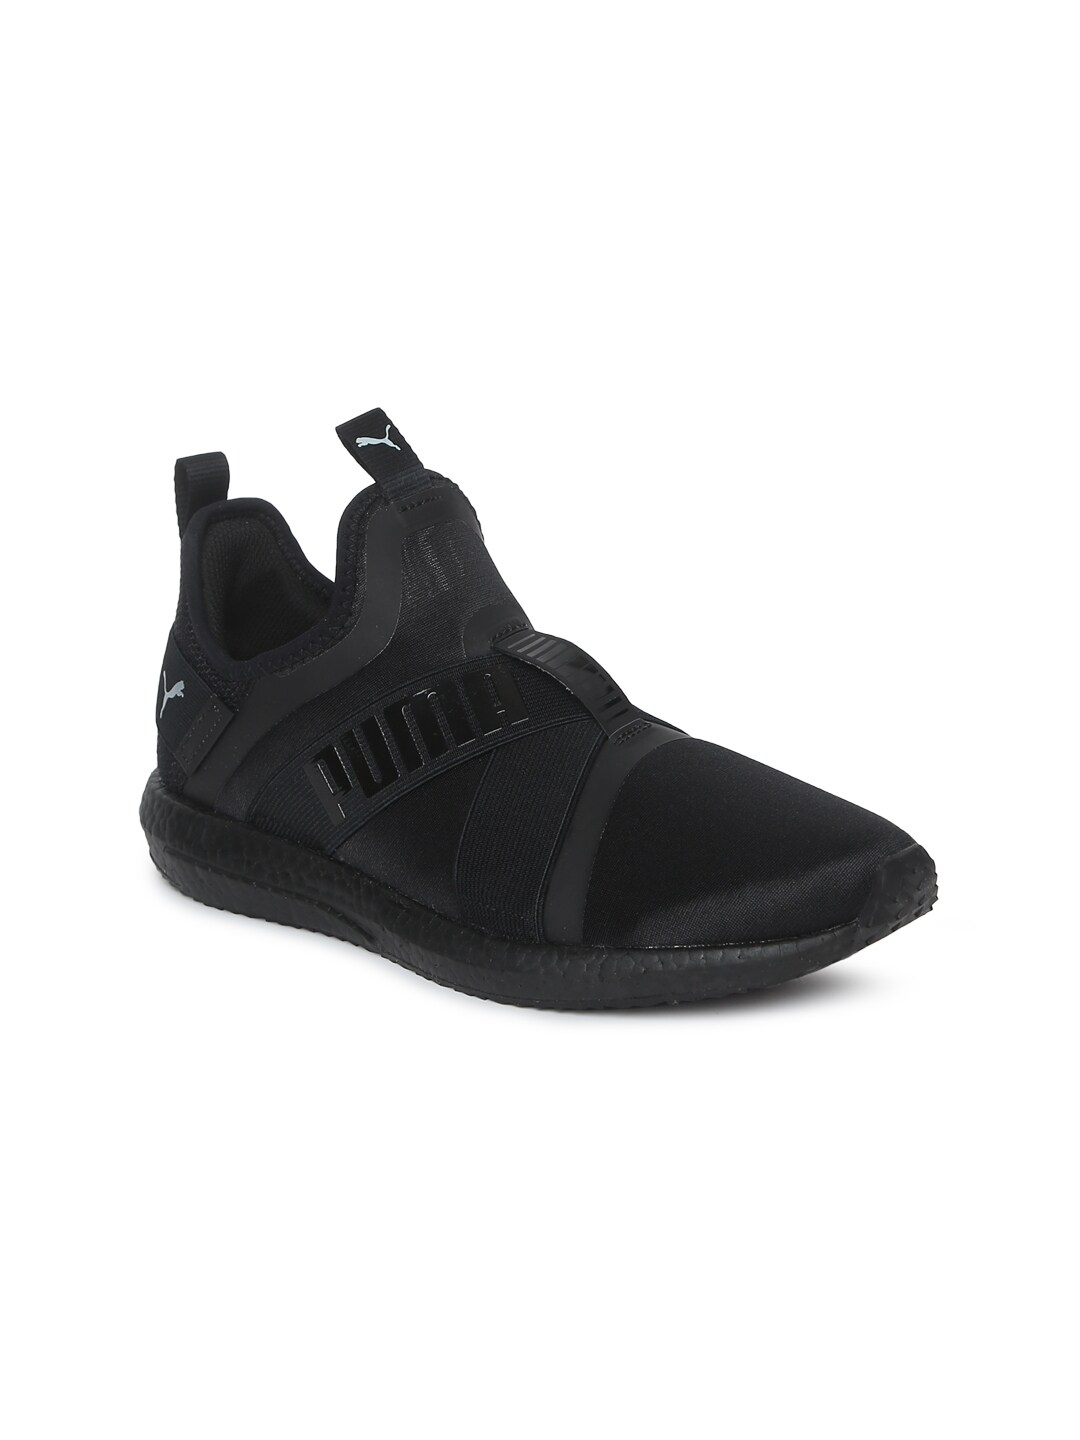 Puma Footwear Women Sandal - Buy Puma Footwear Women Sandal online in India d064c9afb